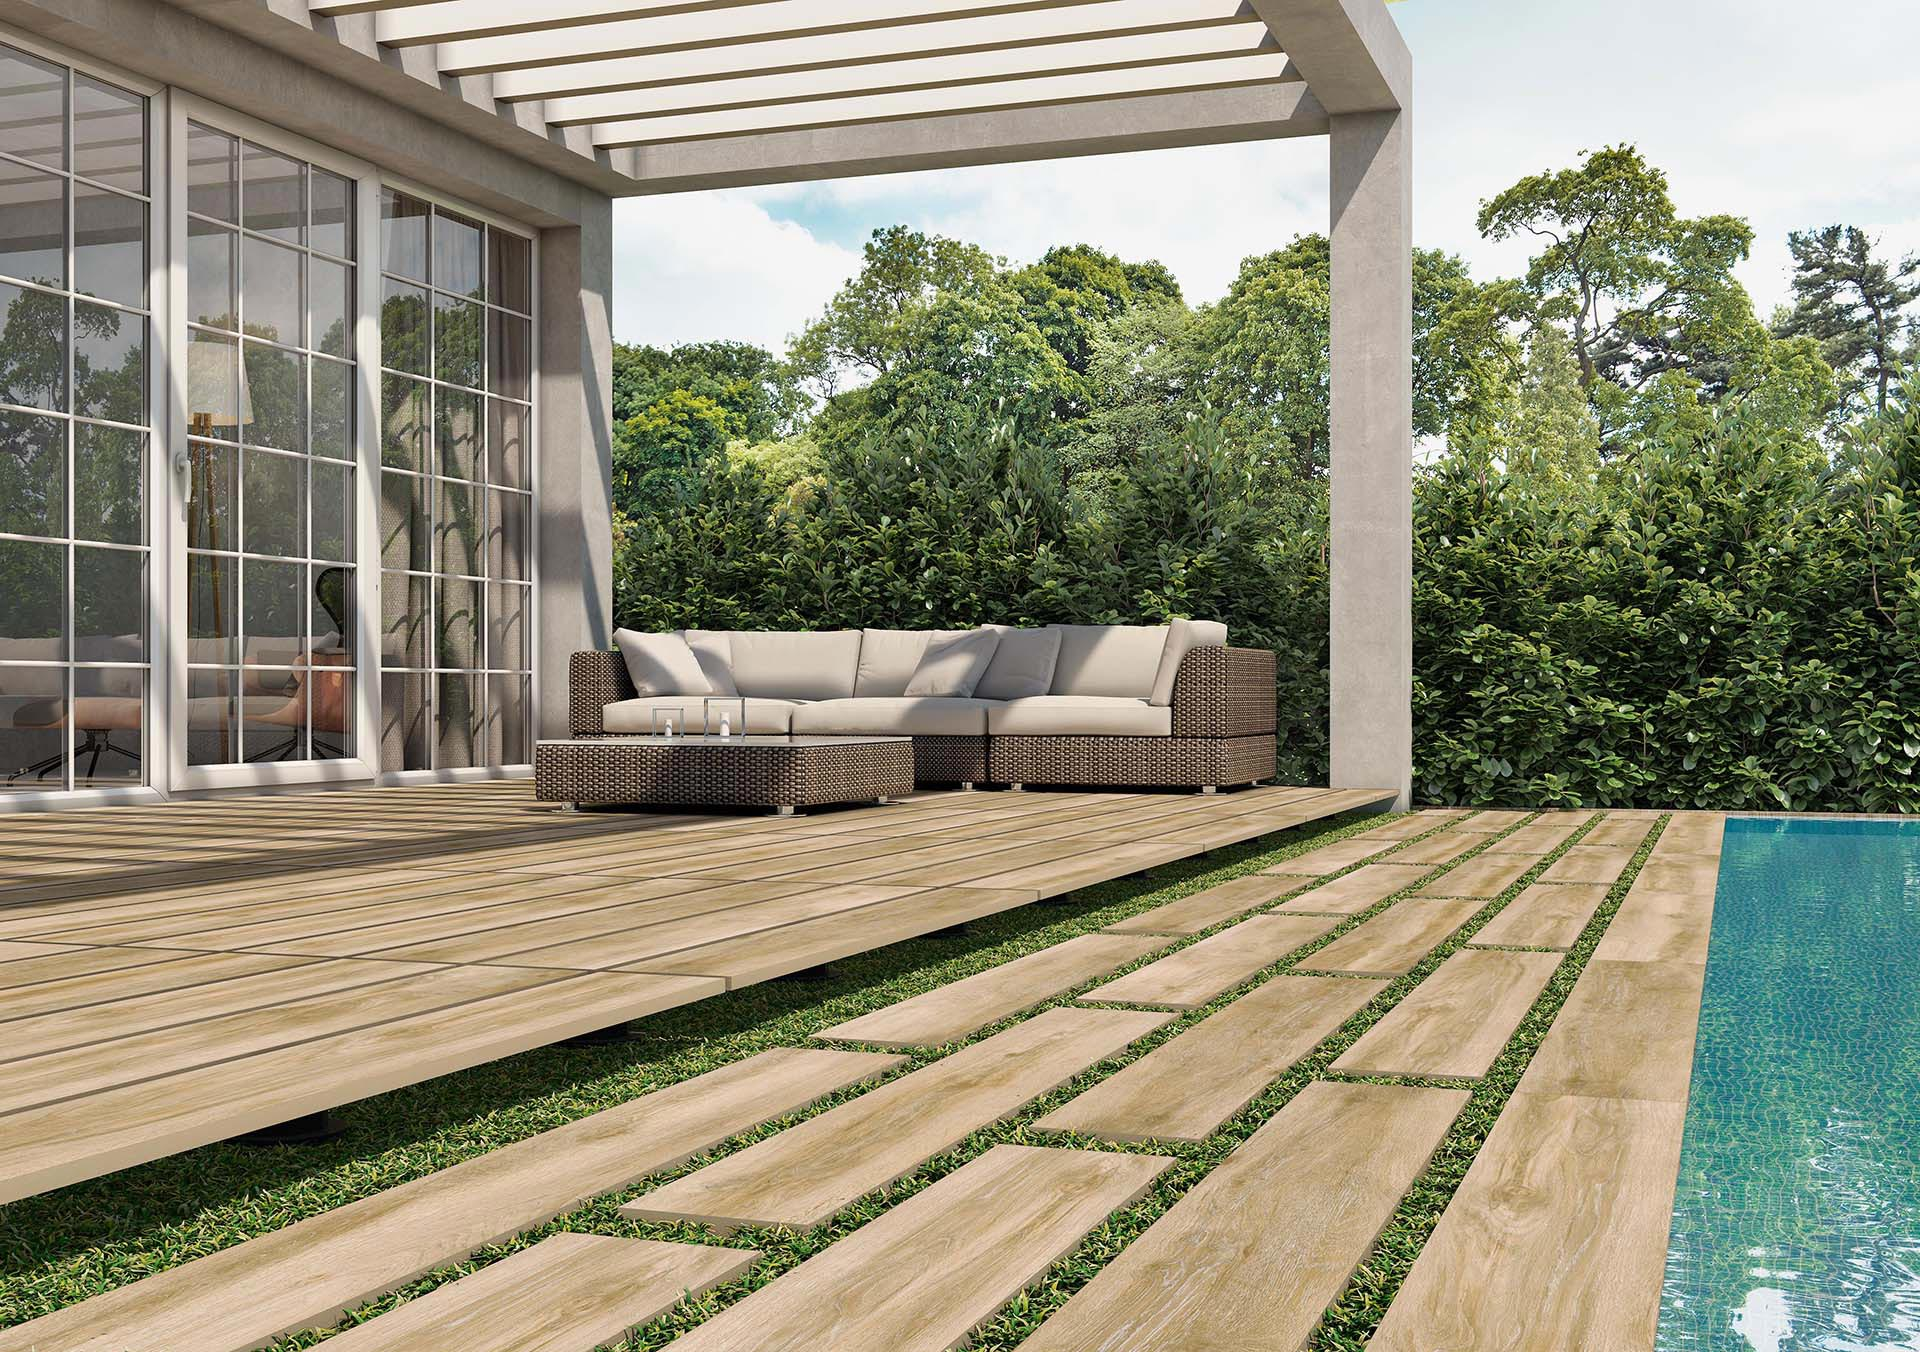 UPTILES - FOREVER ROBLE TILES BY TAU CERAMICA